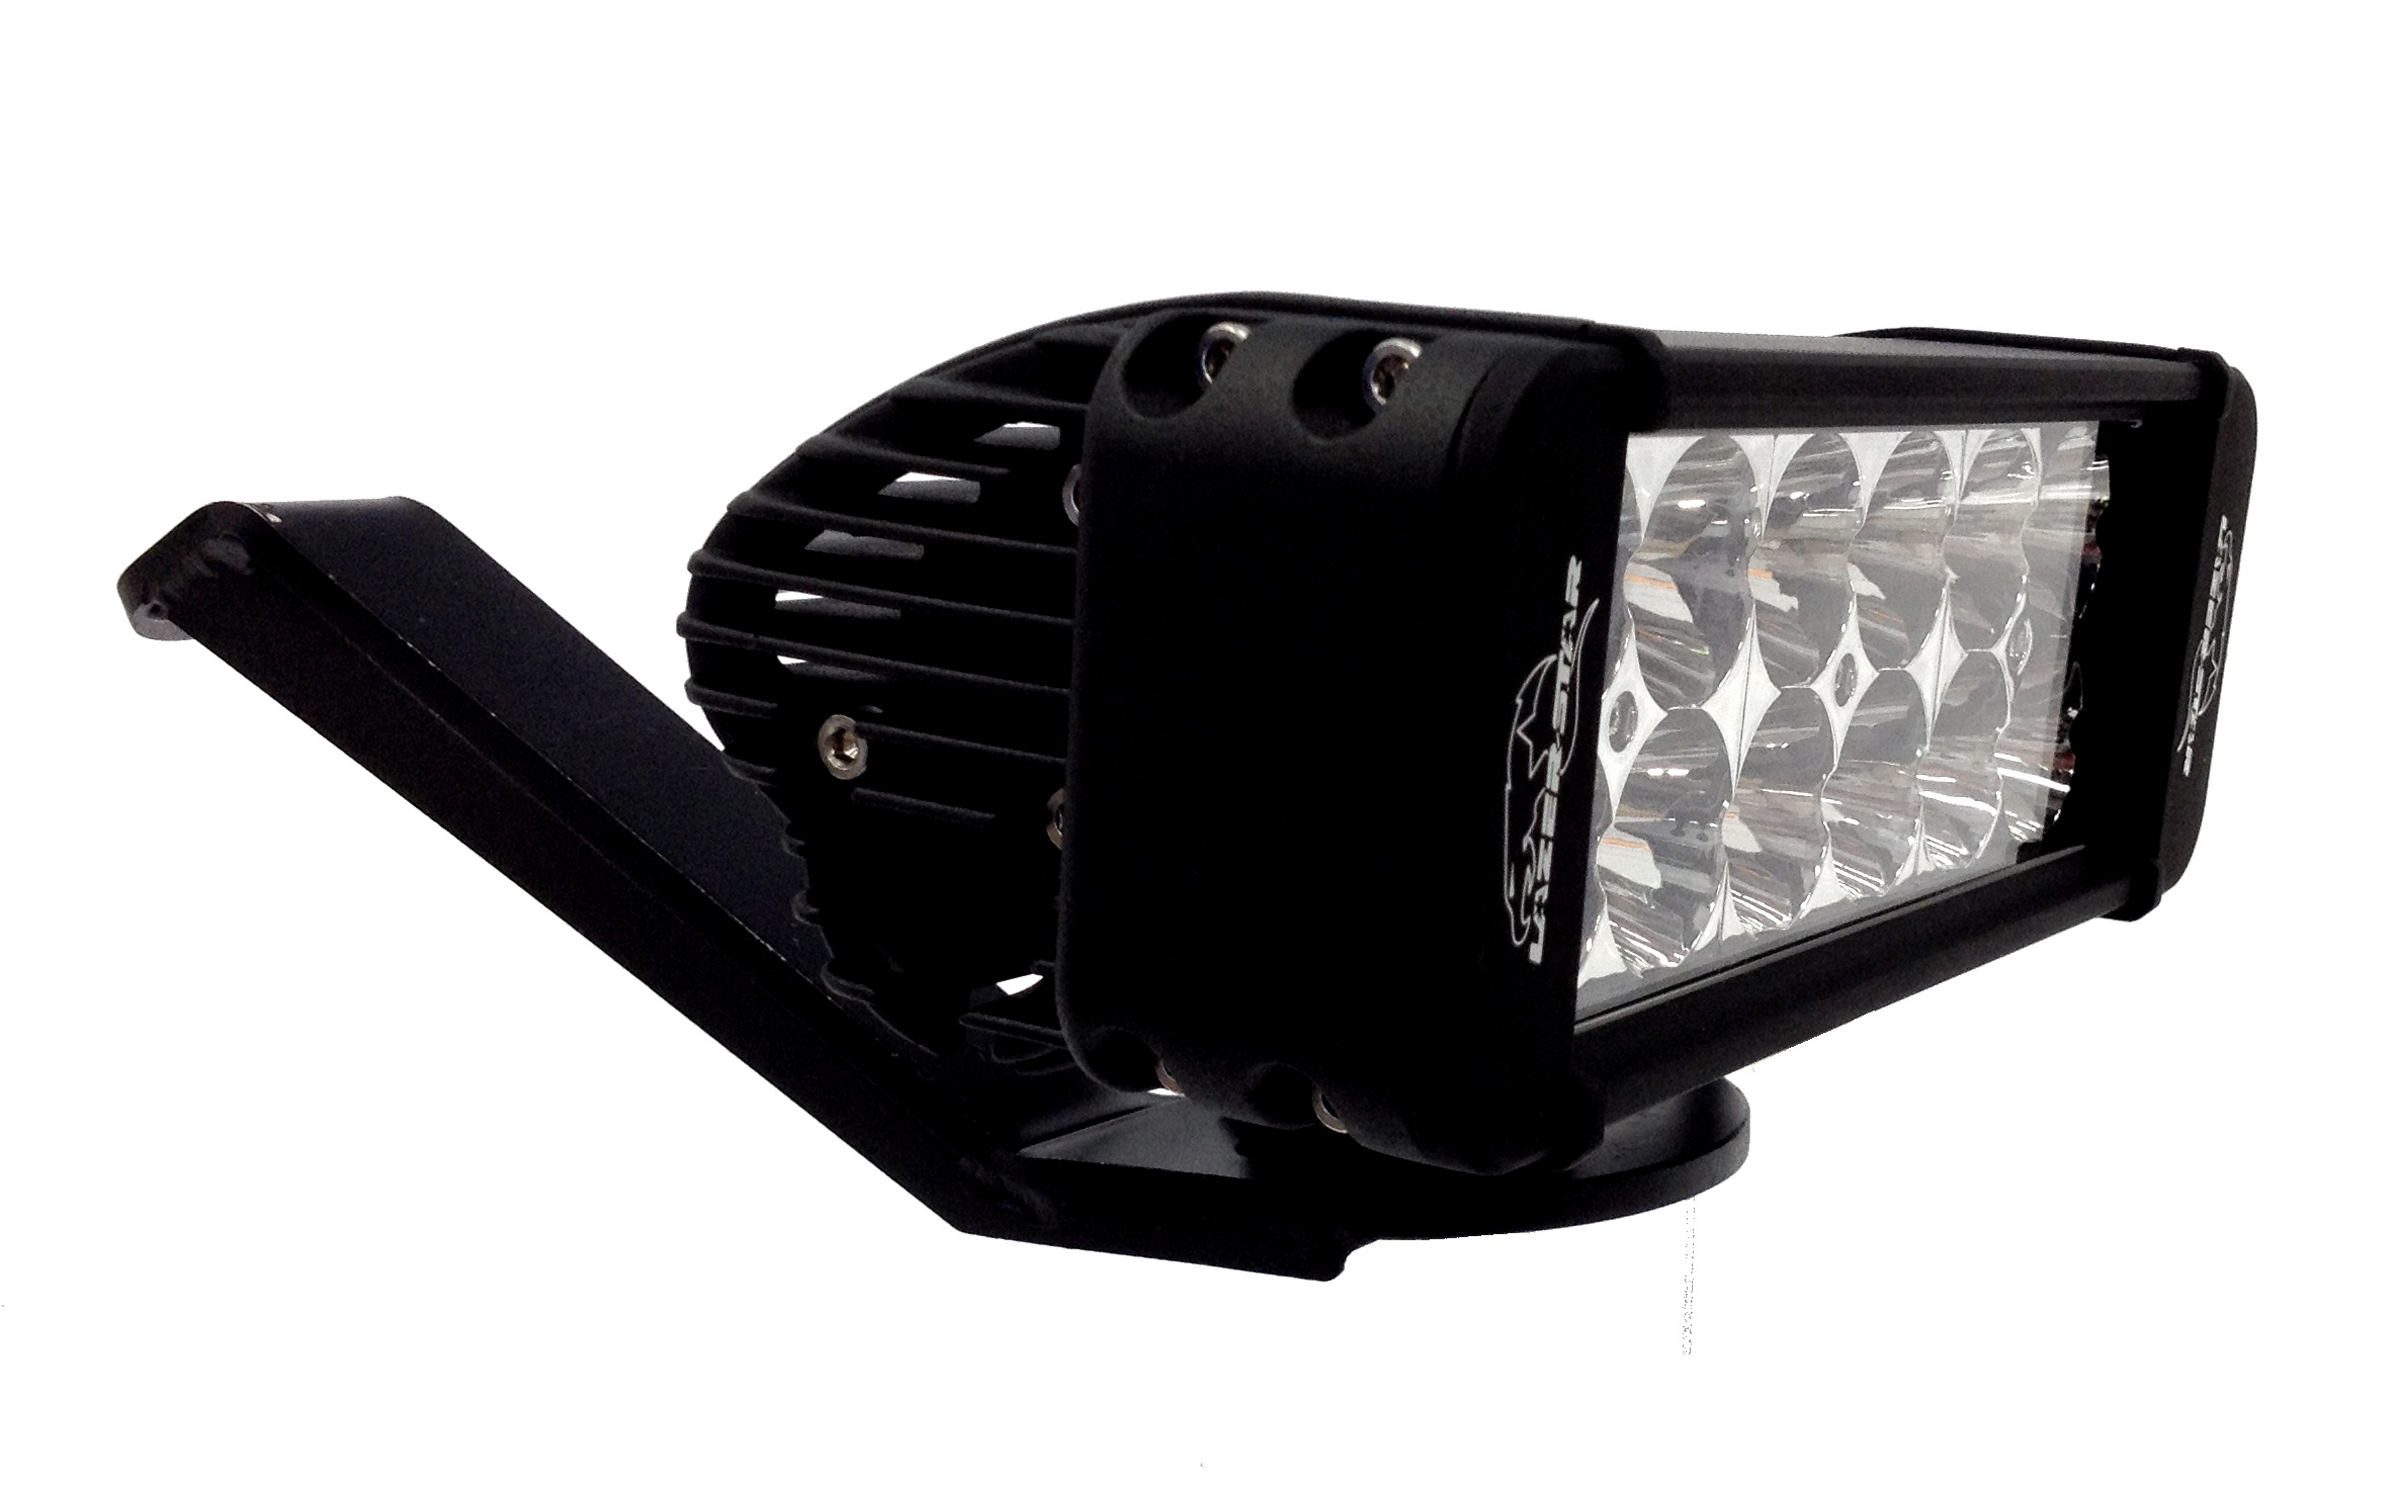 Lazer star lights offering led light handlebar kits for sport atvs lazer star lights lx led atv handlebar kit pictured here with the 8 endeavour 3 mozeypictures Choice Image